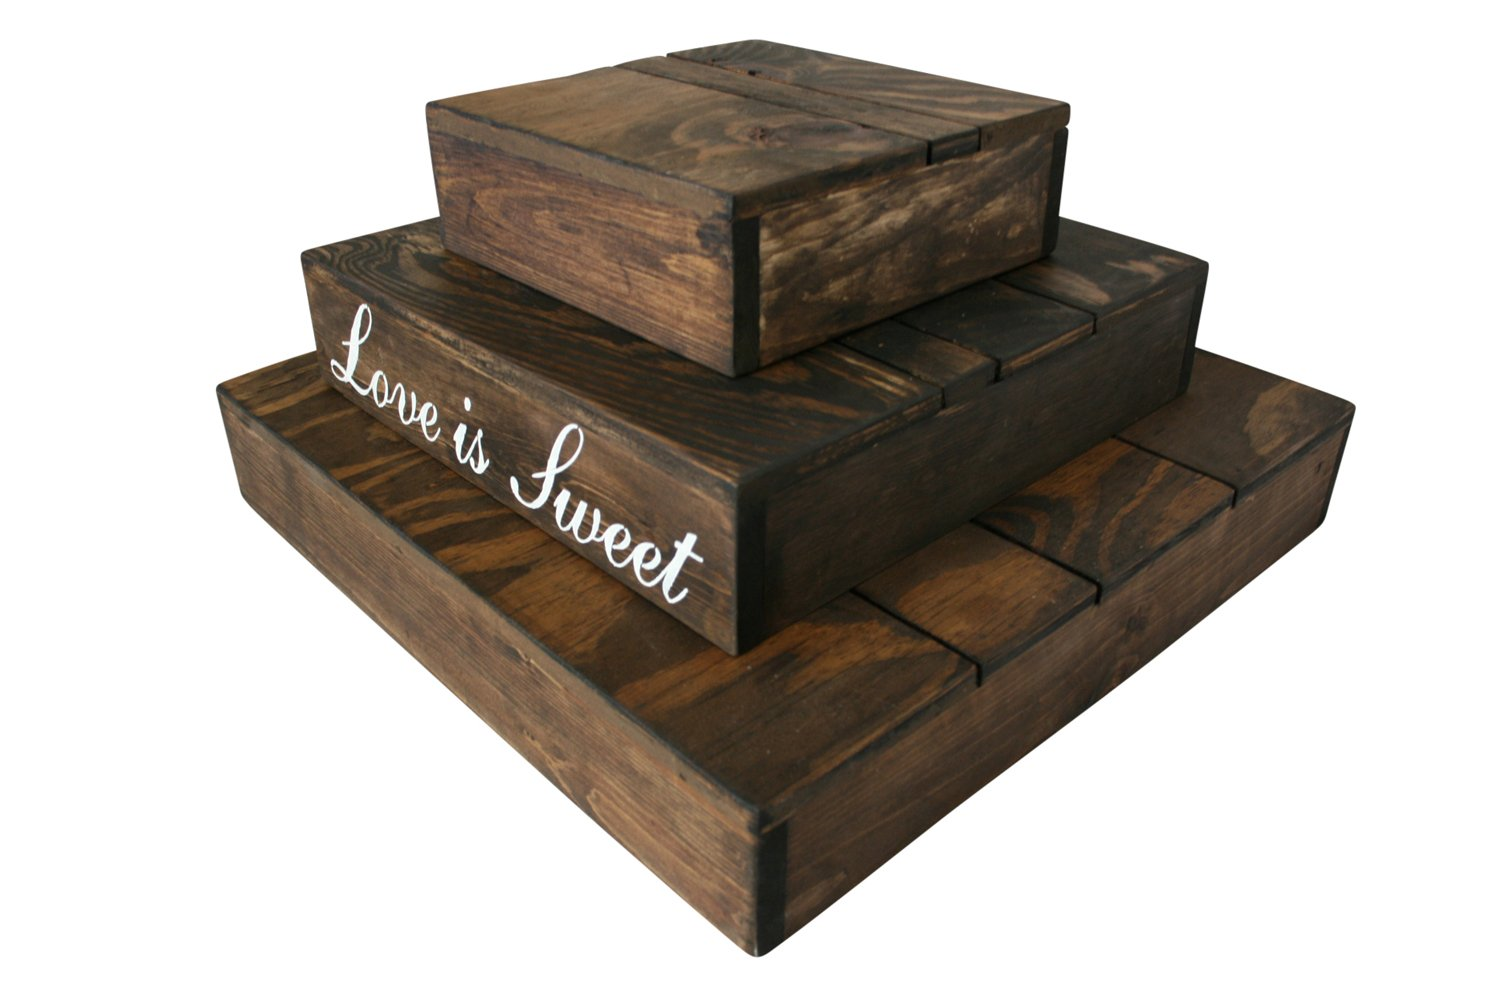 Rustic Wedding Country Barn Farmhouse Wedding Cake Cupcake Stand 3 Tier Rustic Wooden Country Cake Cupcake Stand (Dark Walnut) by Cleo Classic Designs (Image #4)